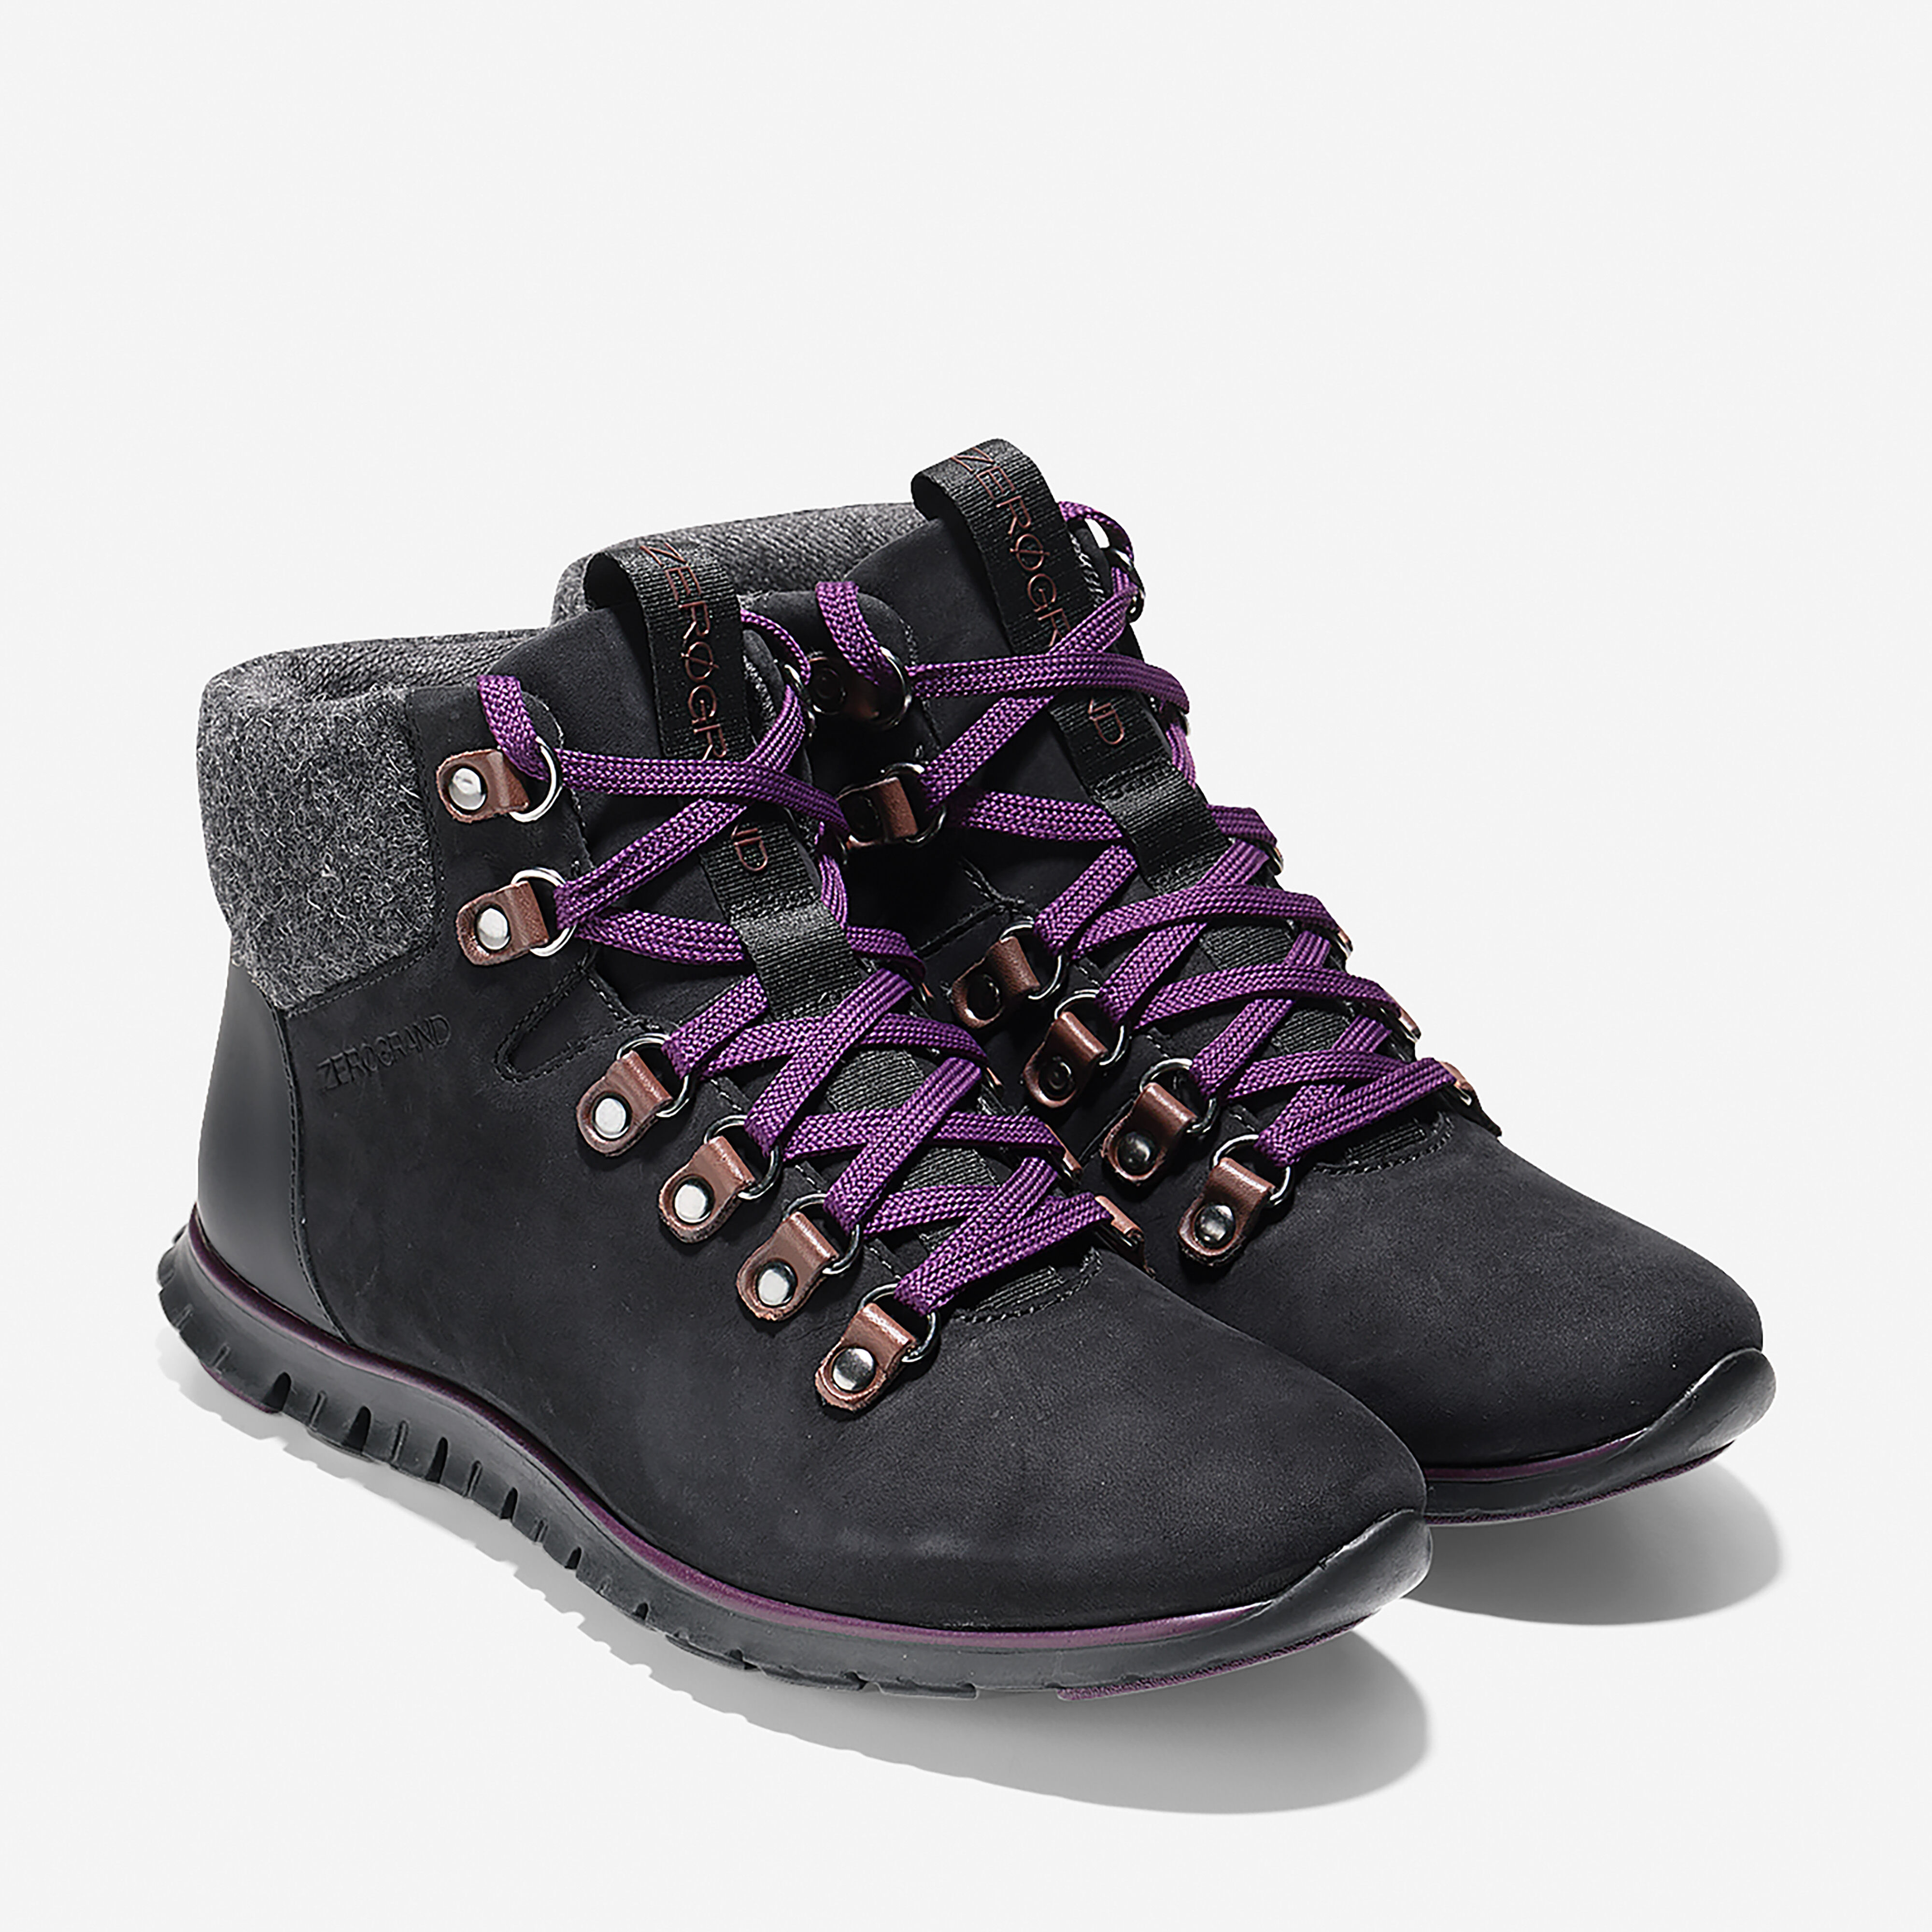 cole haan shoes 2016 may timbs shoes for women 700980